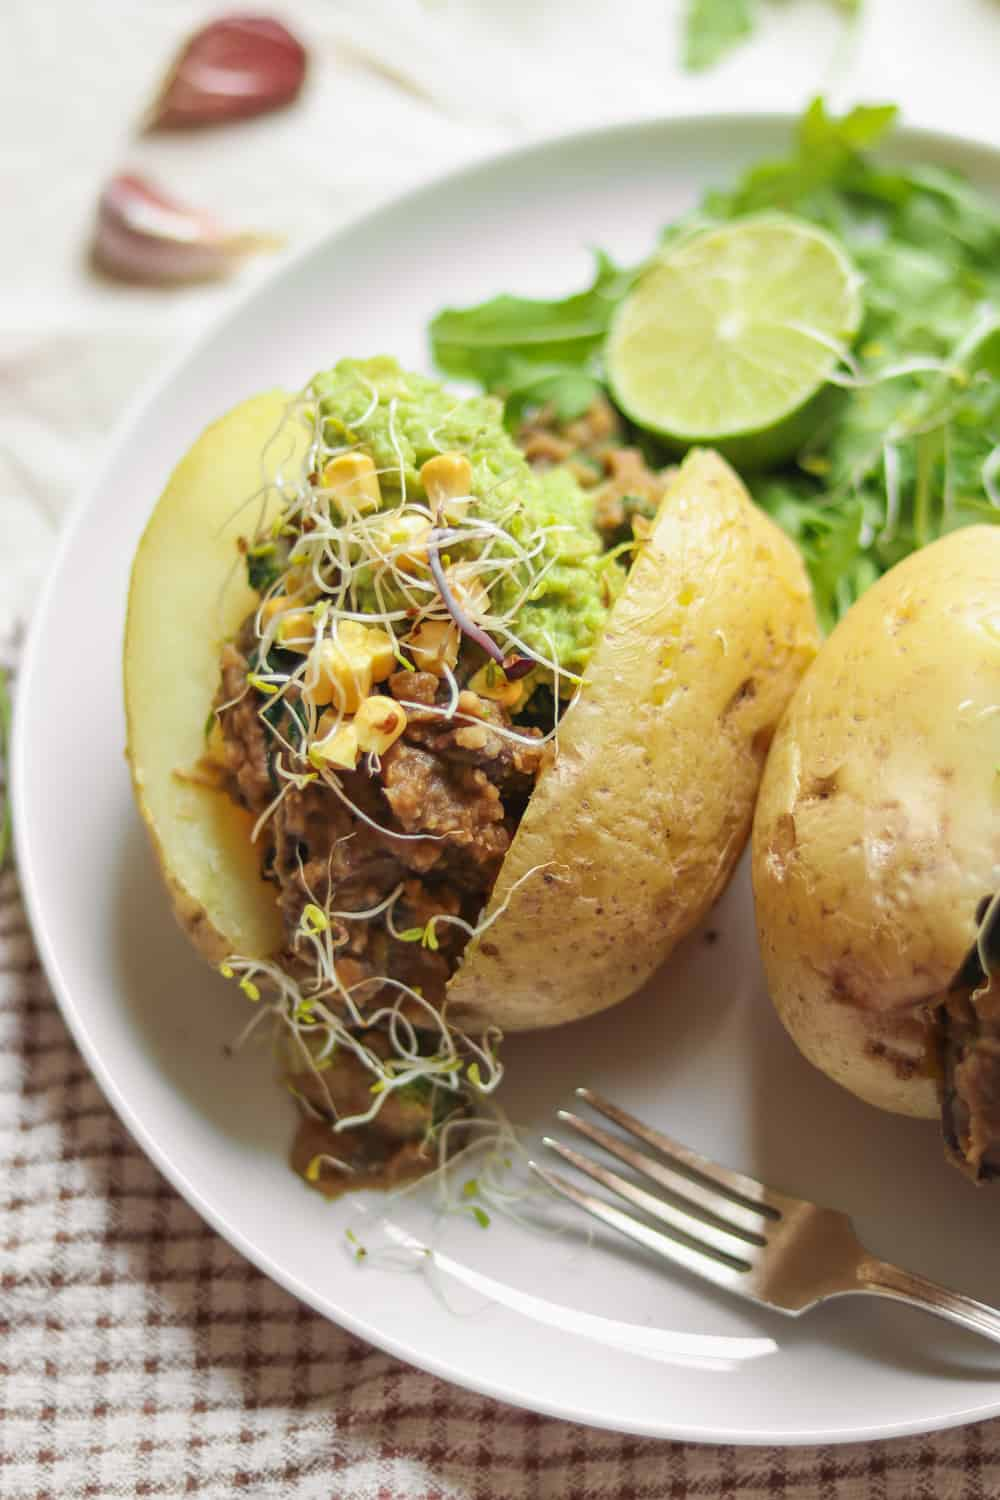 Vegan lunch baked potatoes with lentils, avocado and sweetcorn